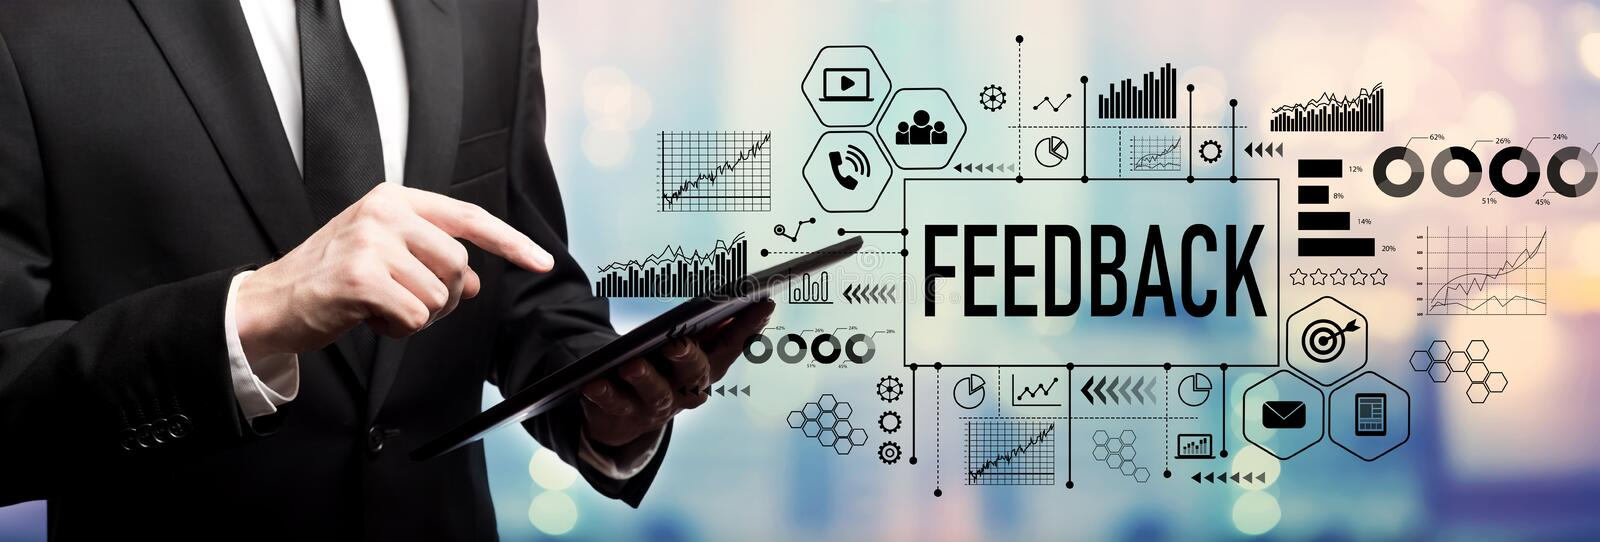 Feedback concept with businessman royalty free stock photos